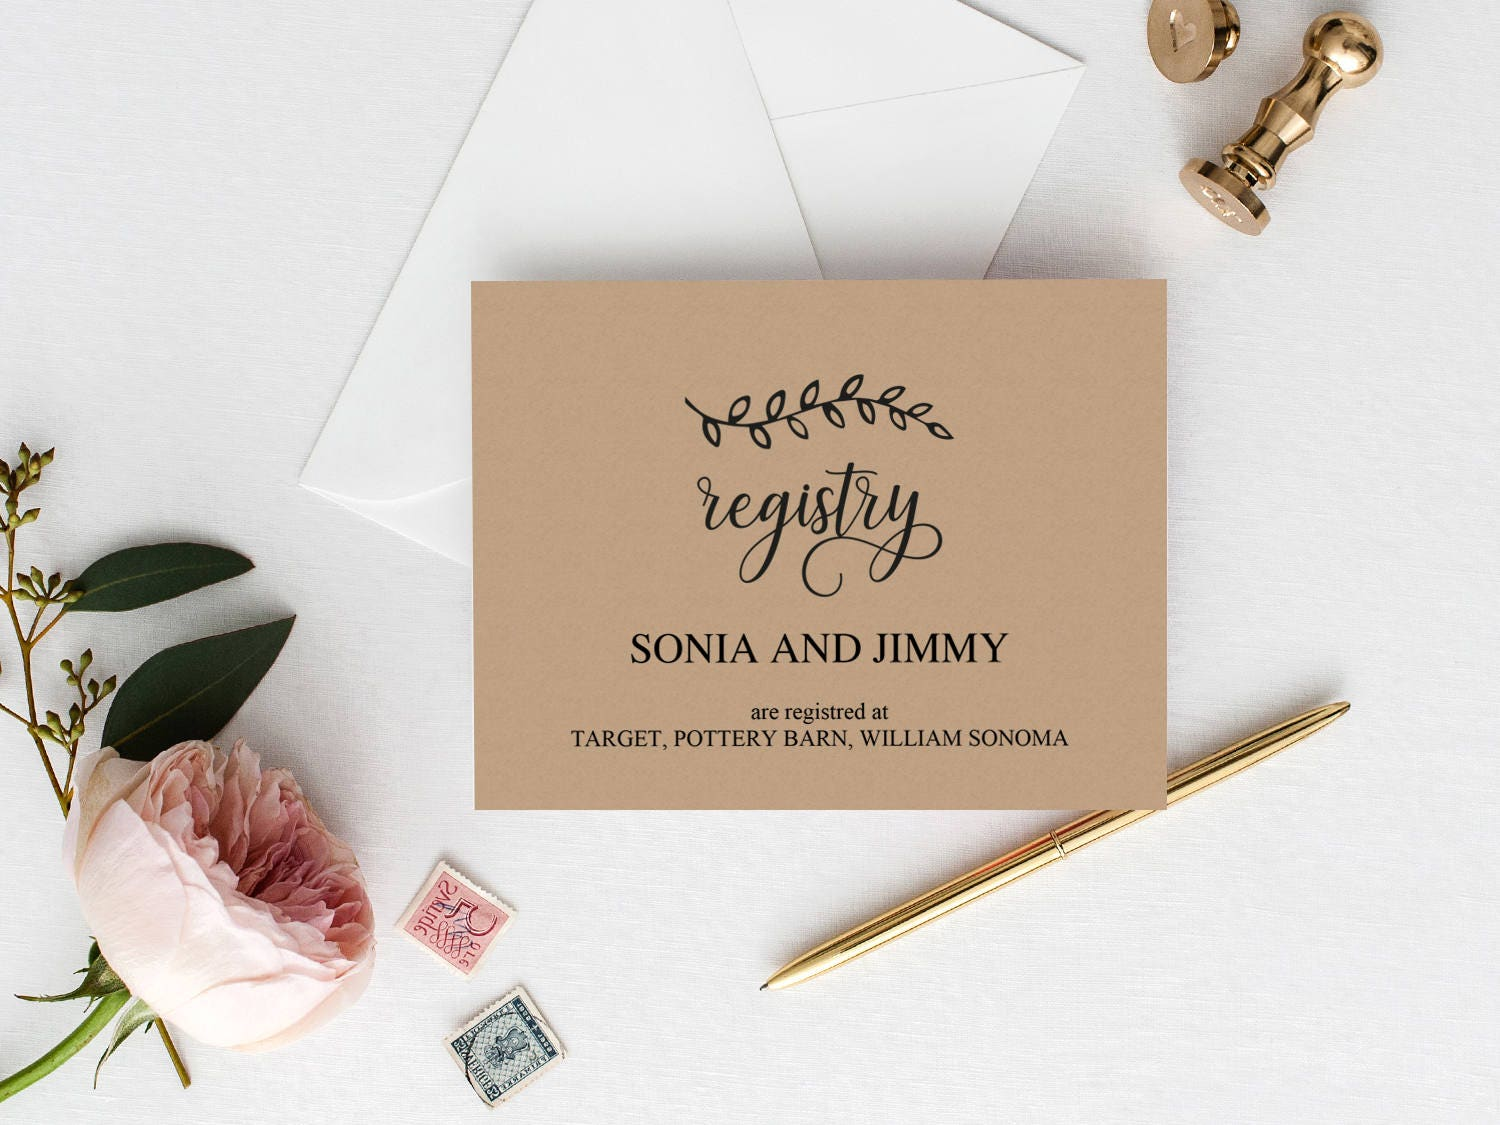 Wedding Gift Card Registry: Wedding Registry Cards Printable Wedding Gift Registry